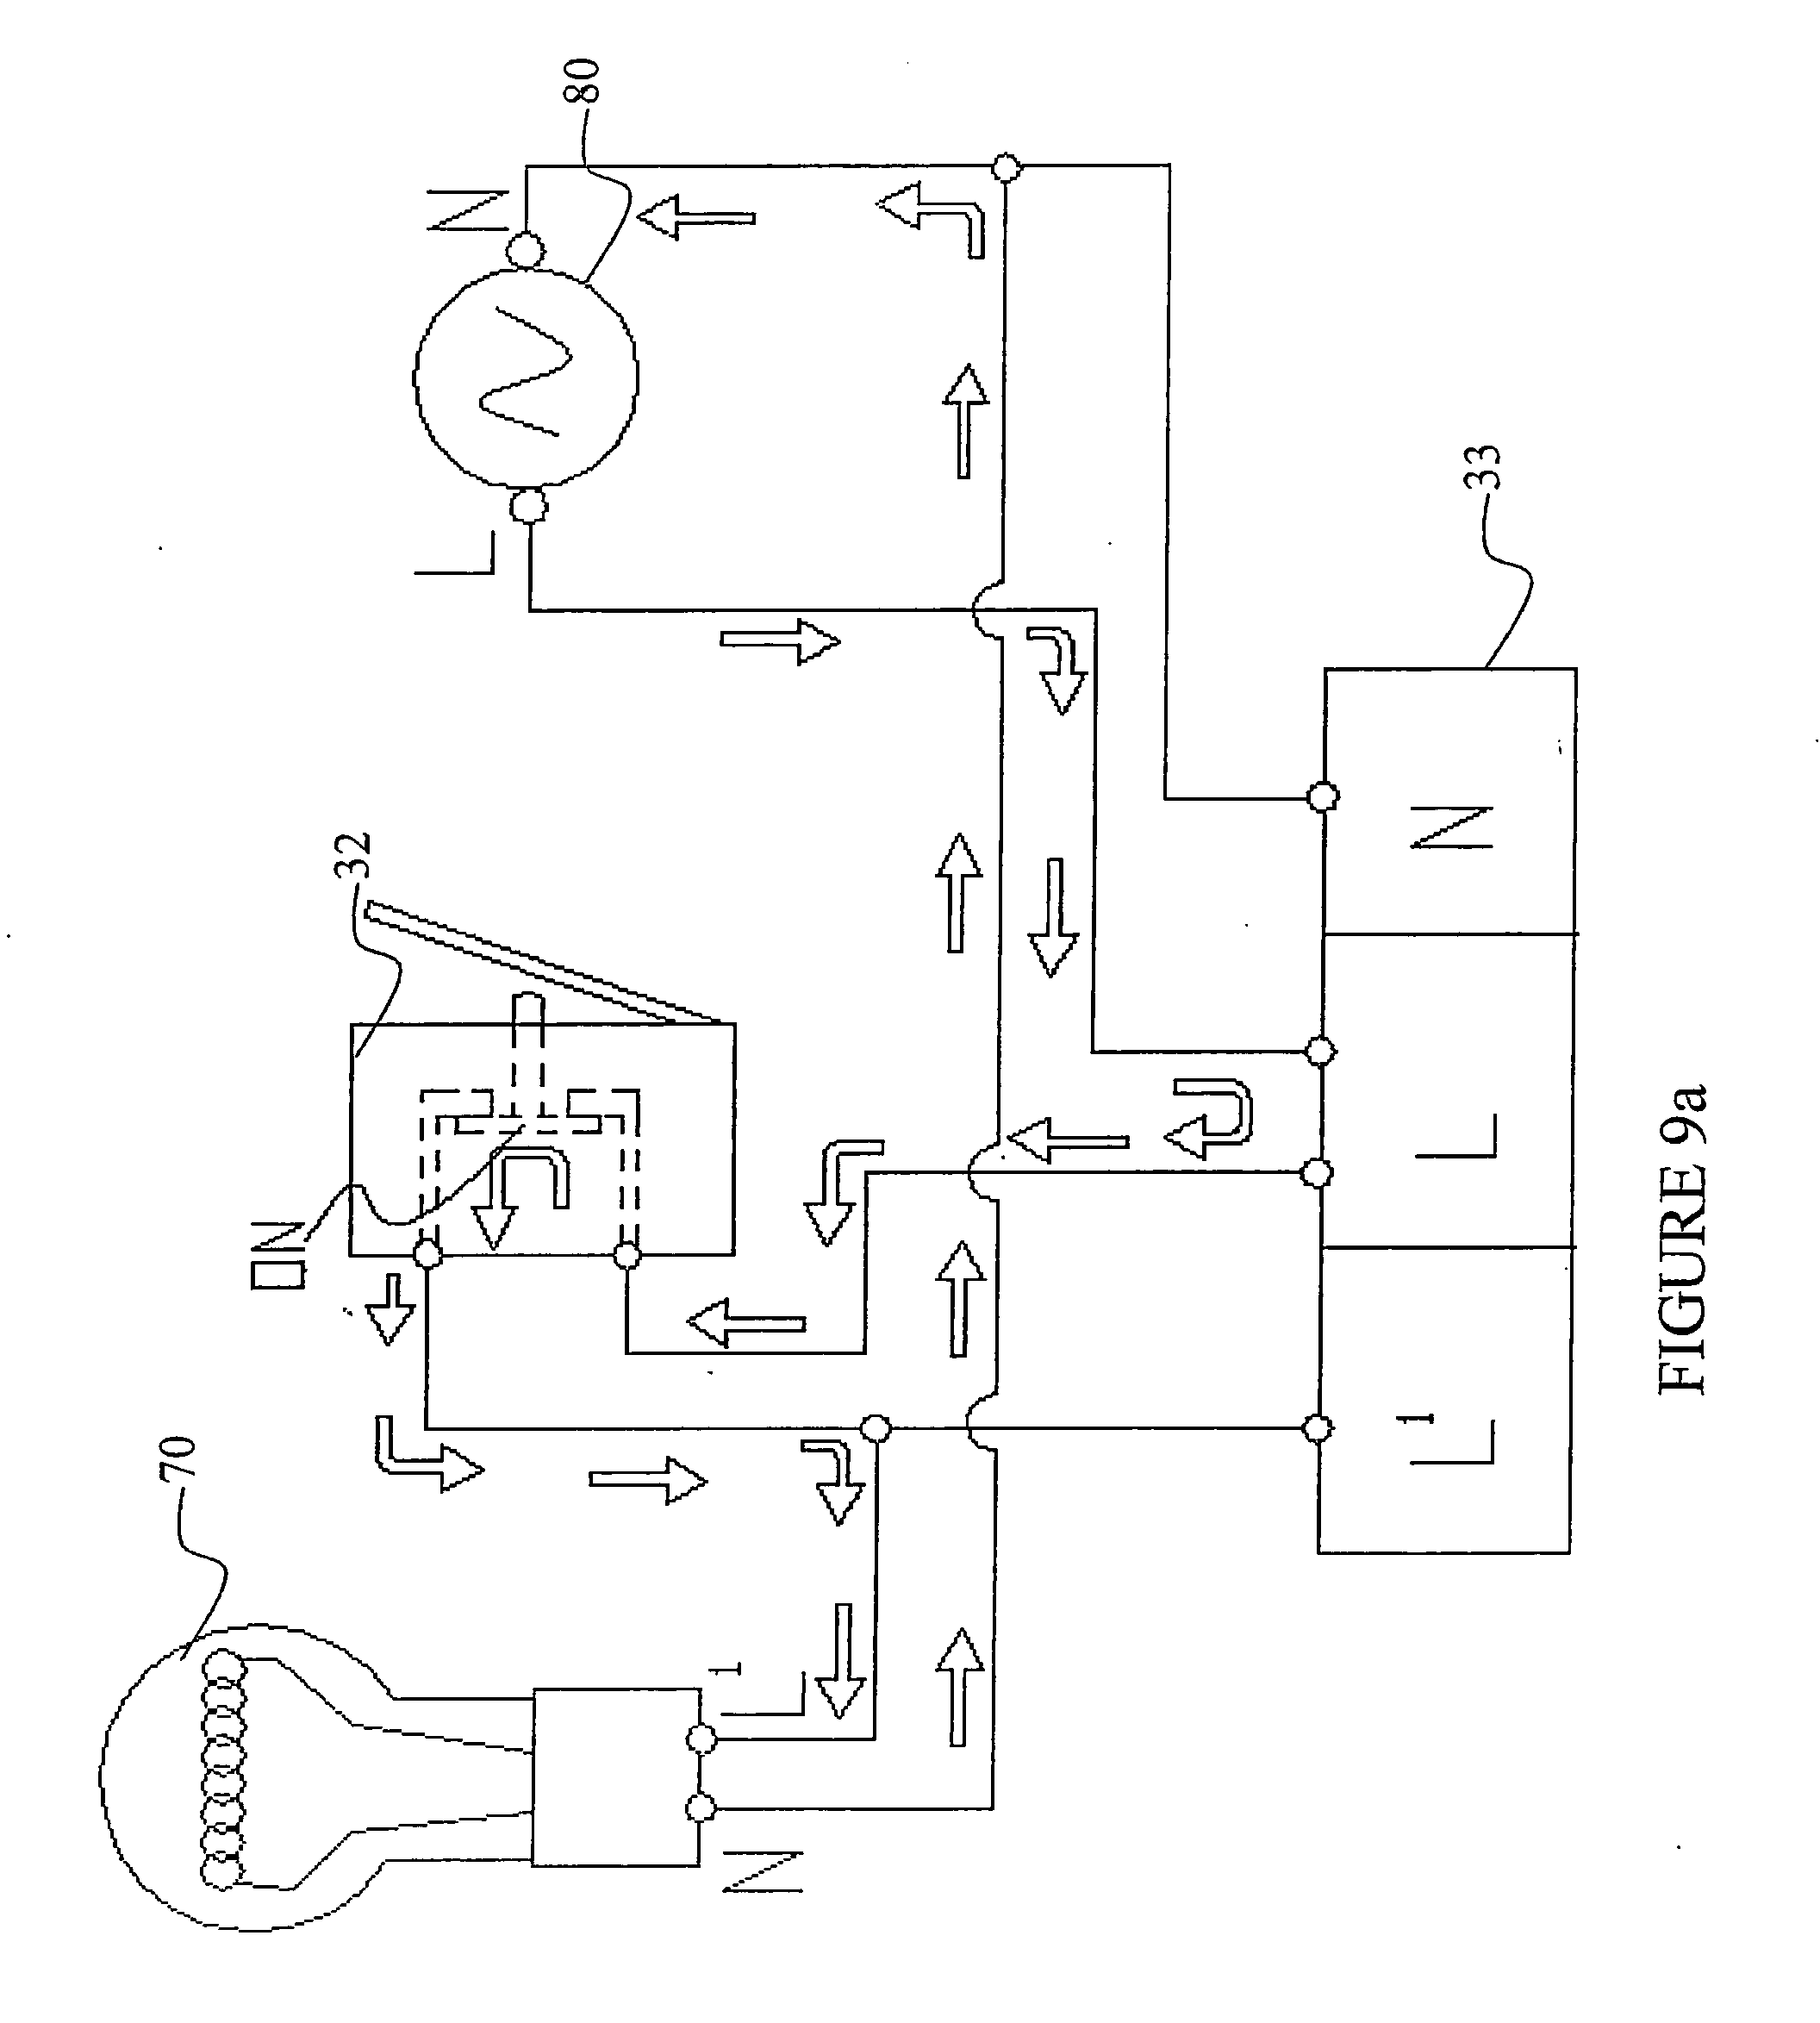 Iq Group Security Light Wiring Diagram – Security Light Wiring Diagram